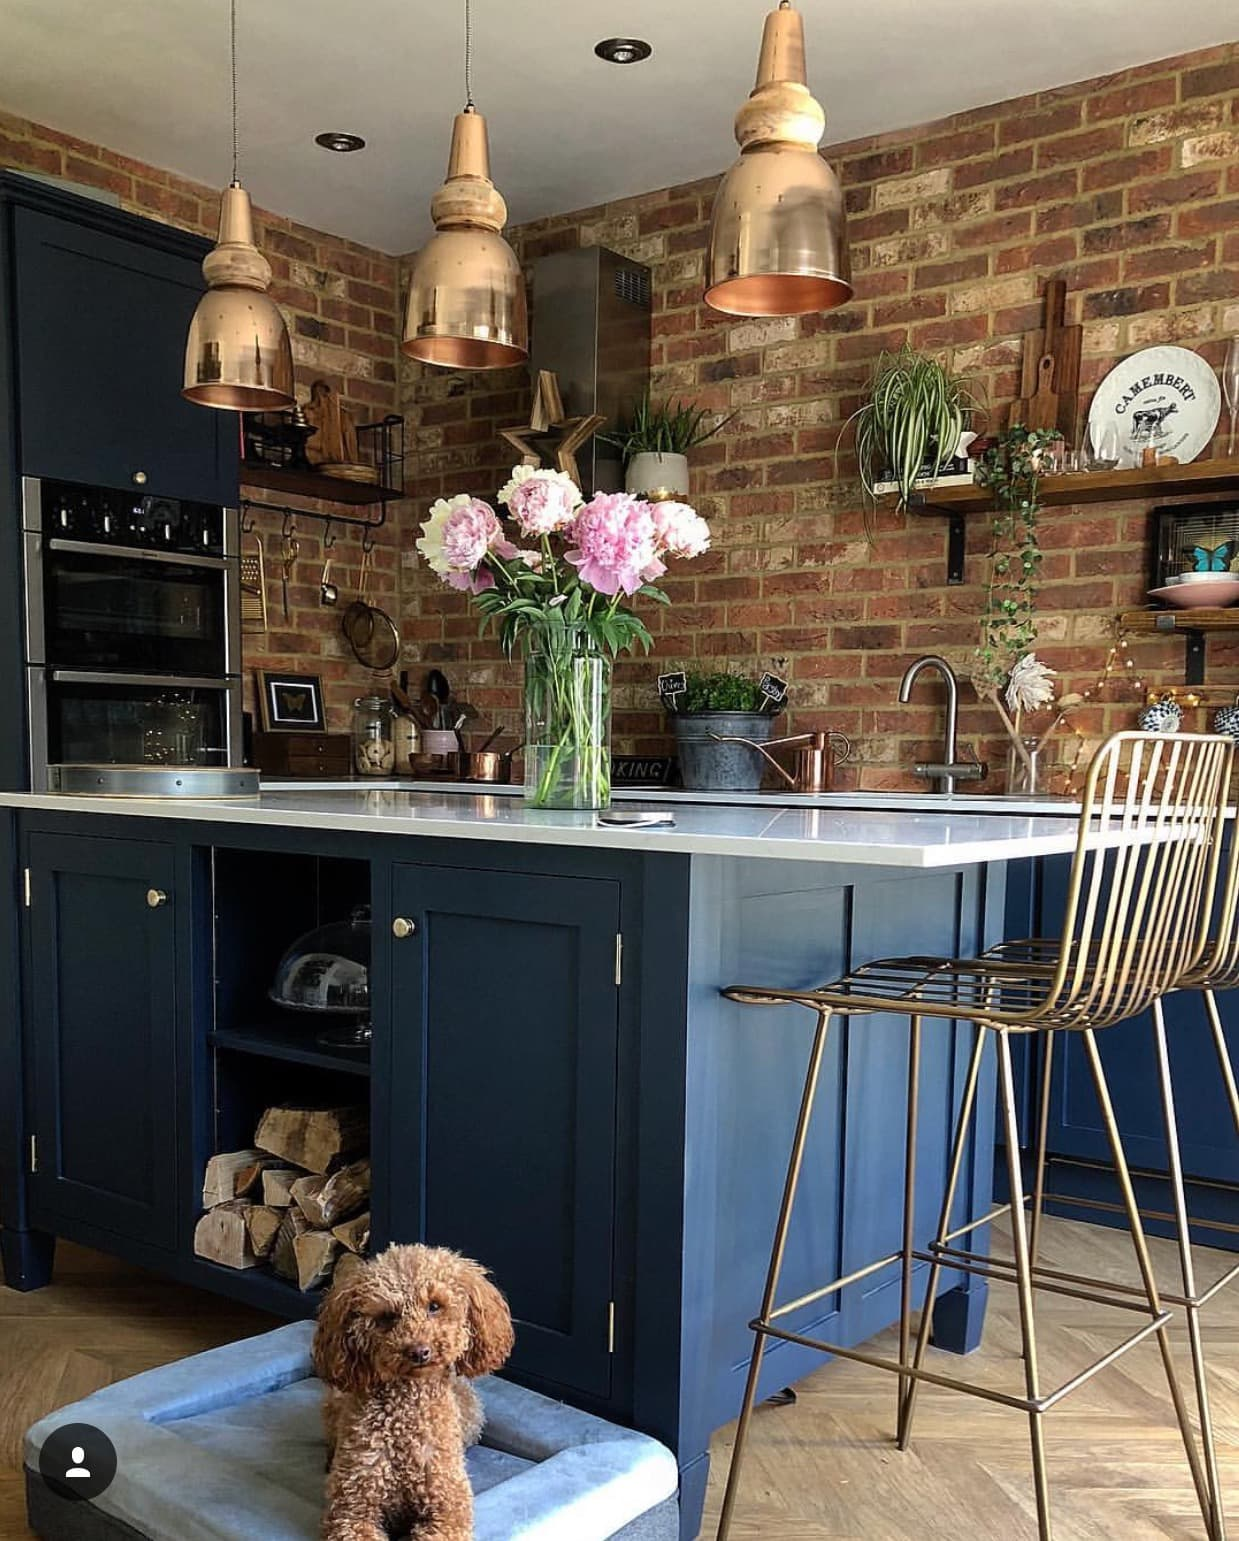 The perfect model for this beautiful kitchen  @renovating_ethelwolf